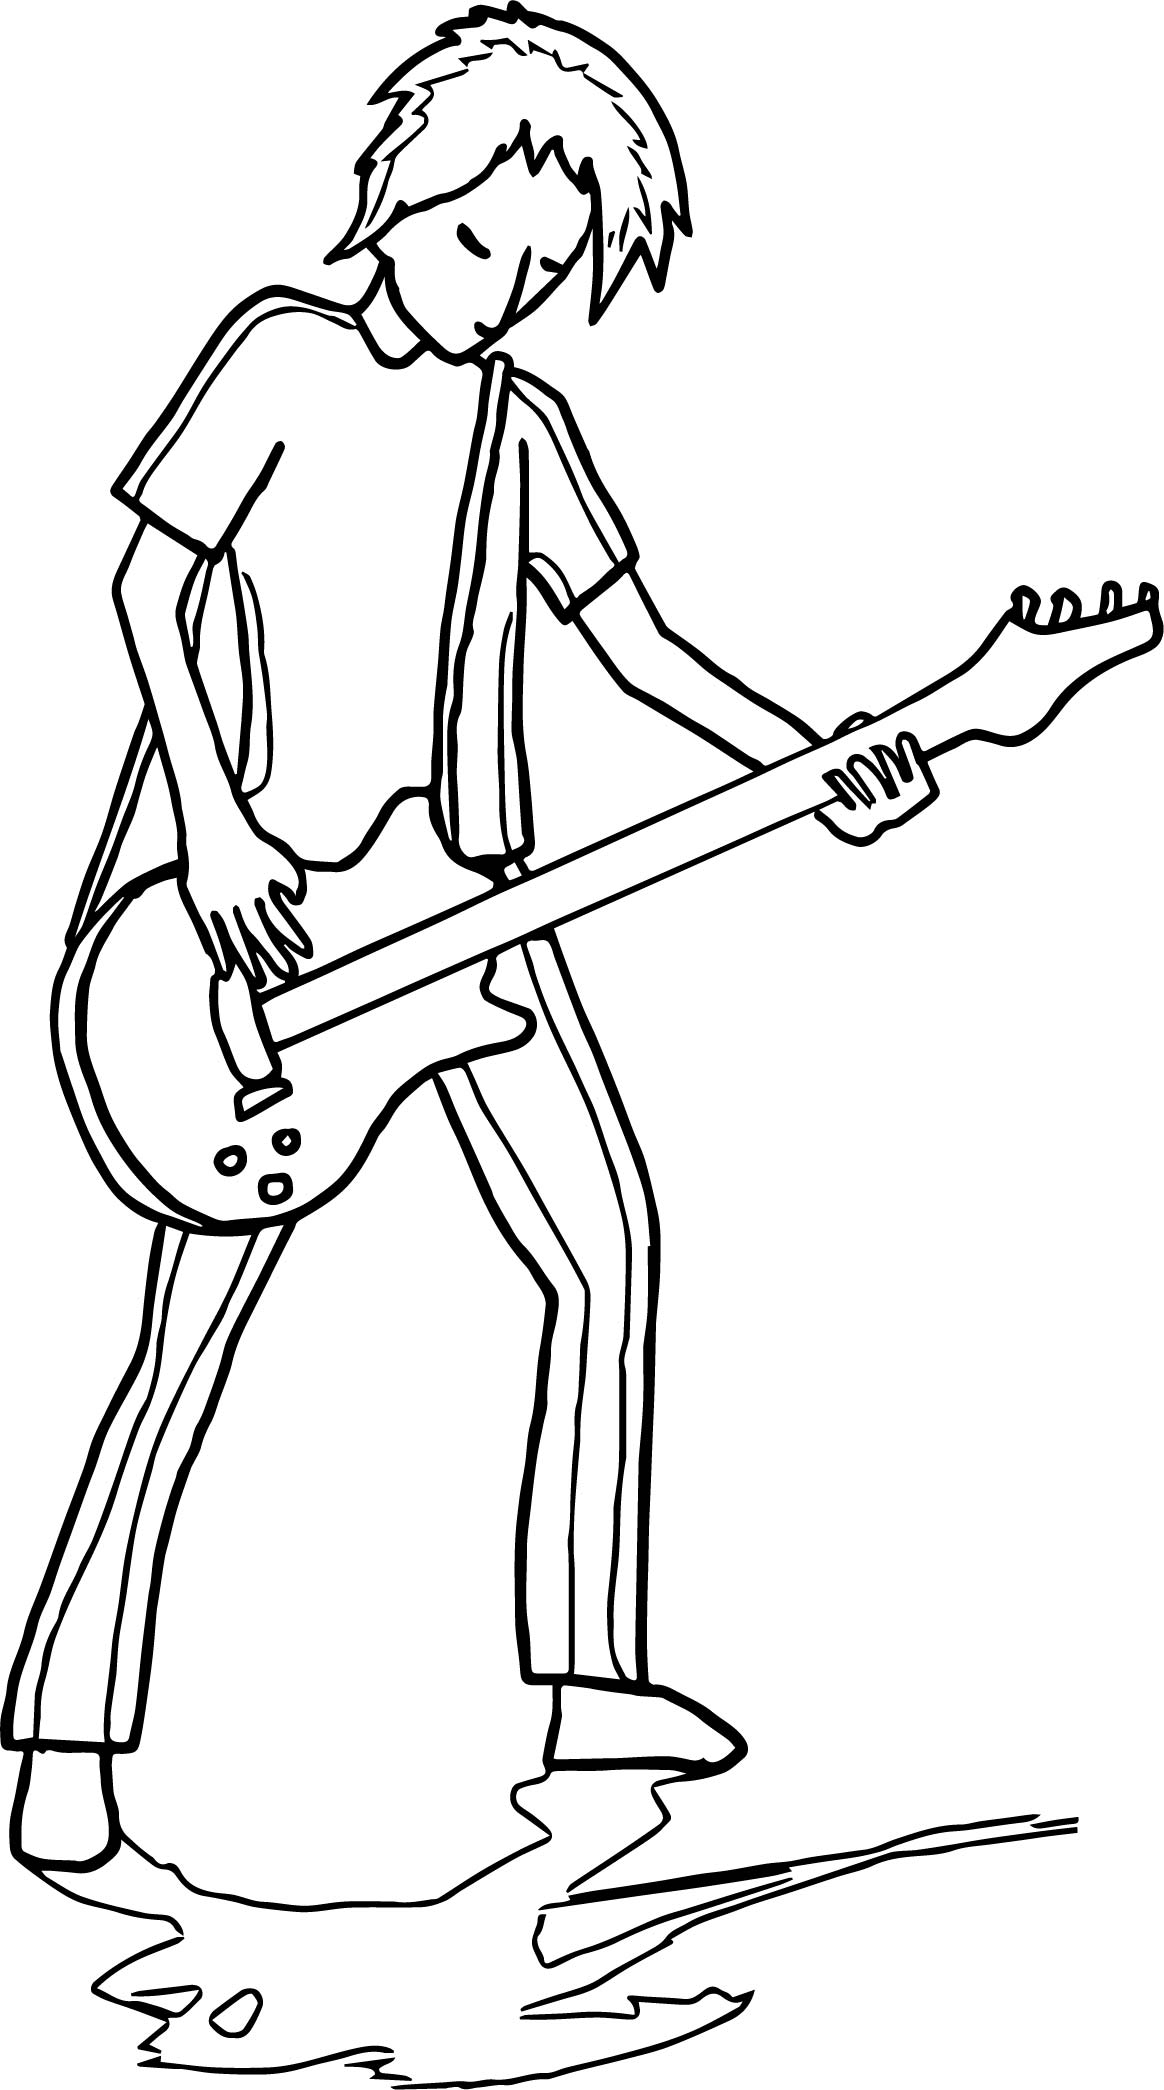 Guitarist Playing The Guitar Coloring Page